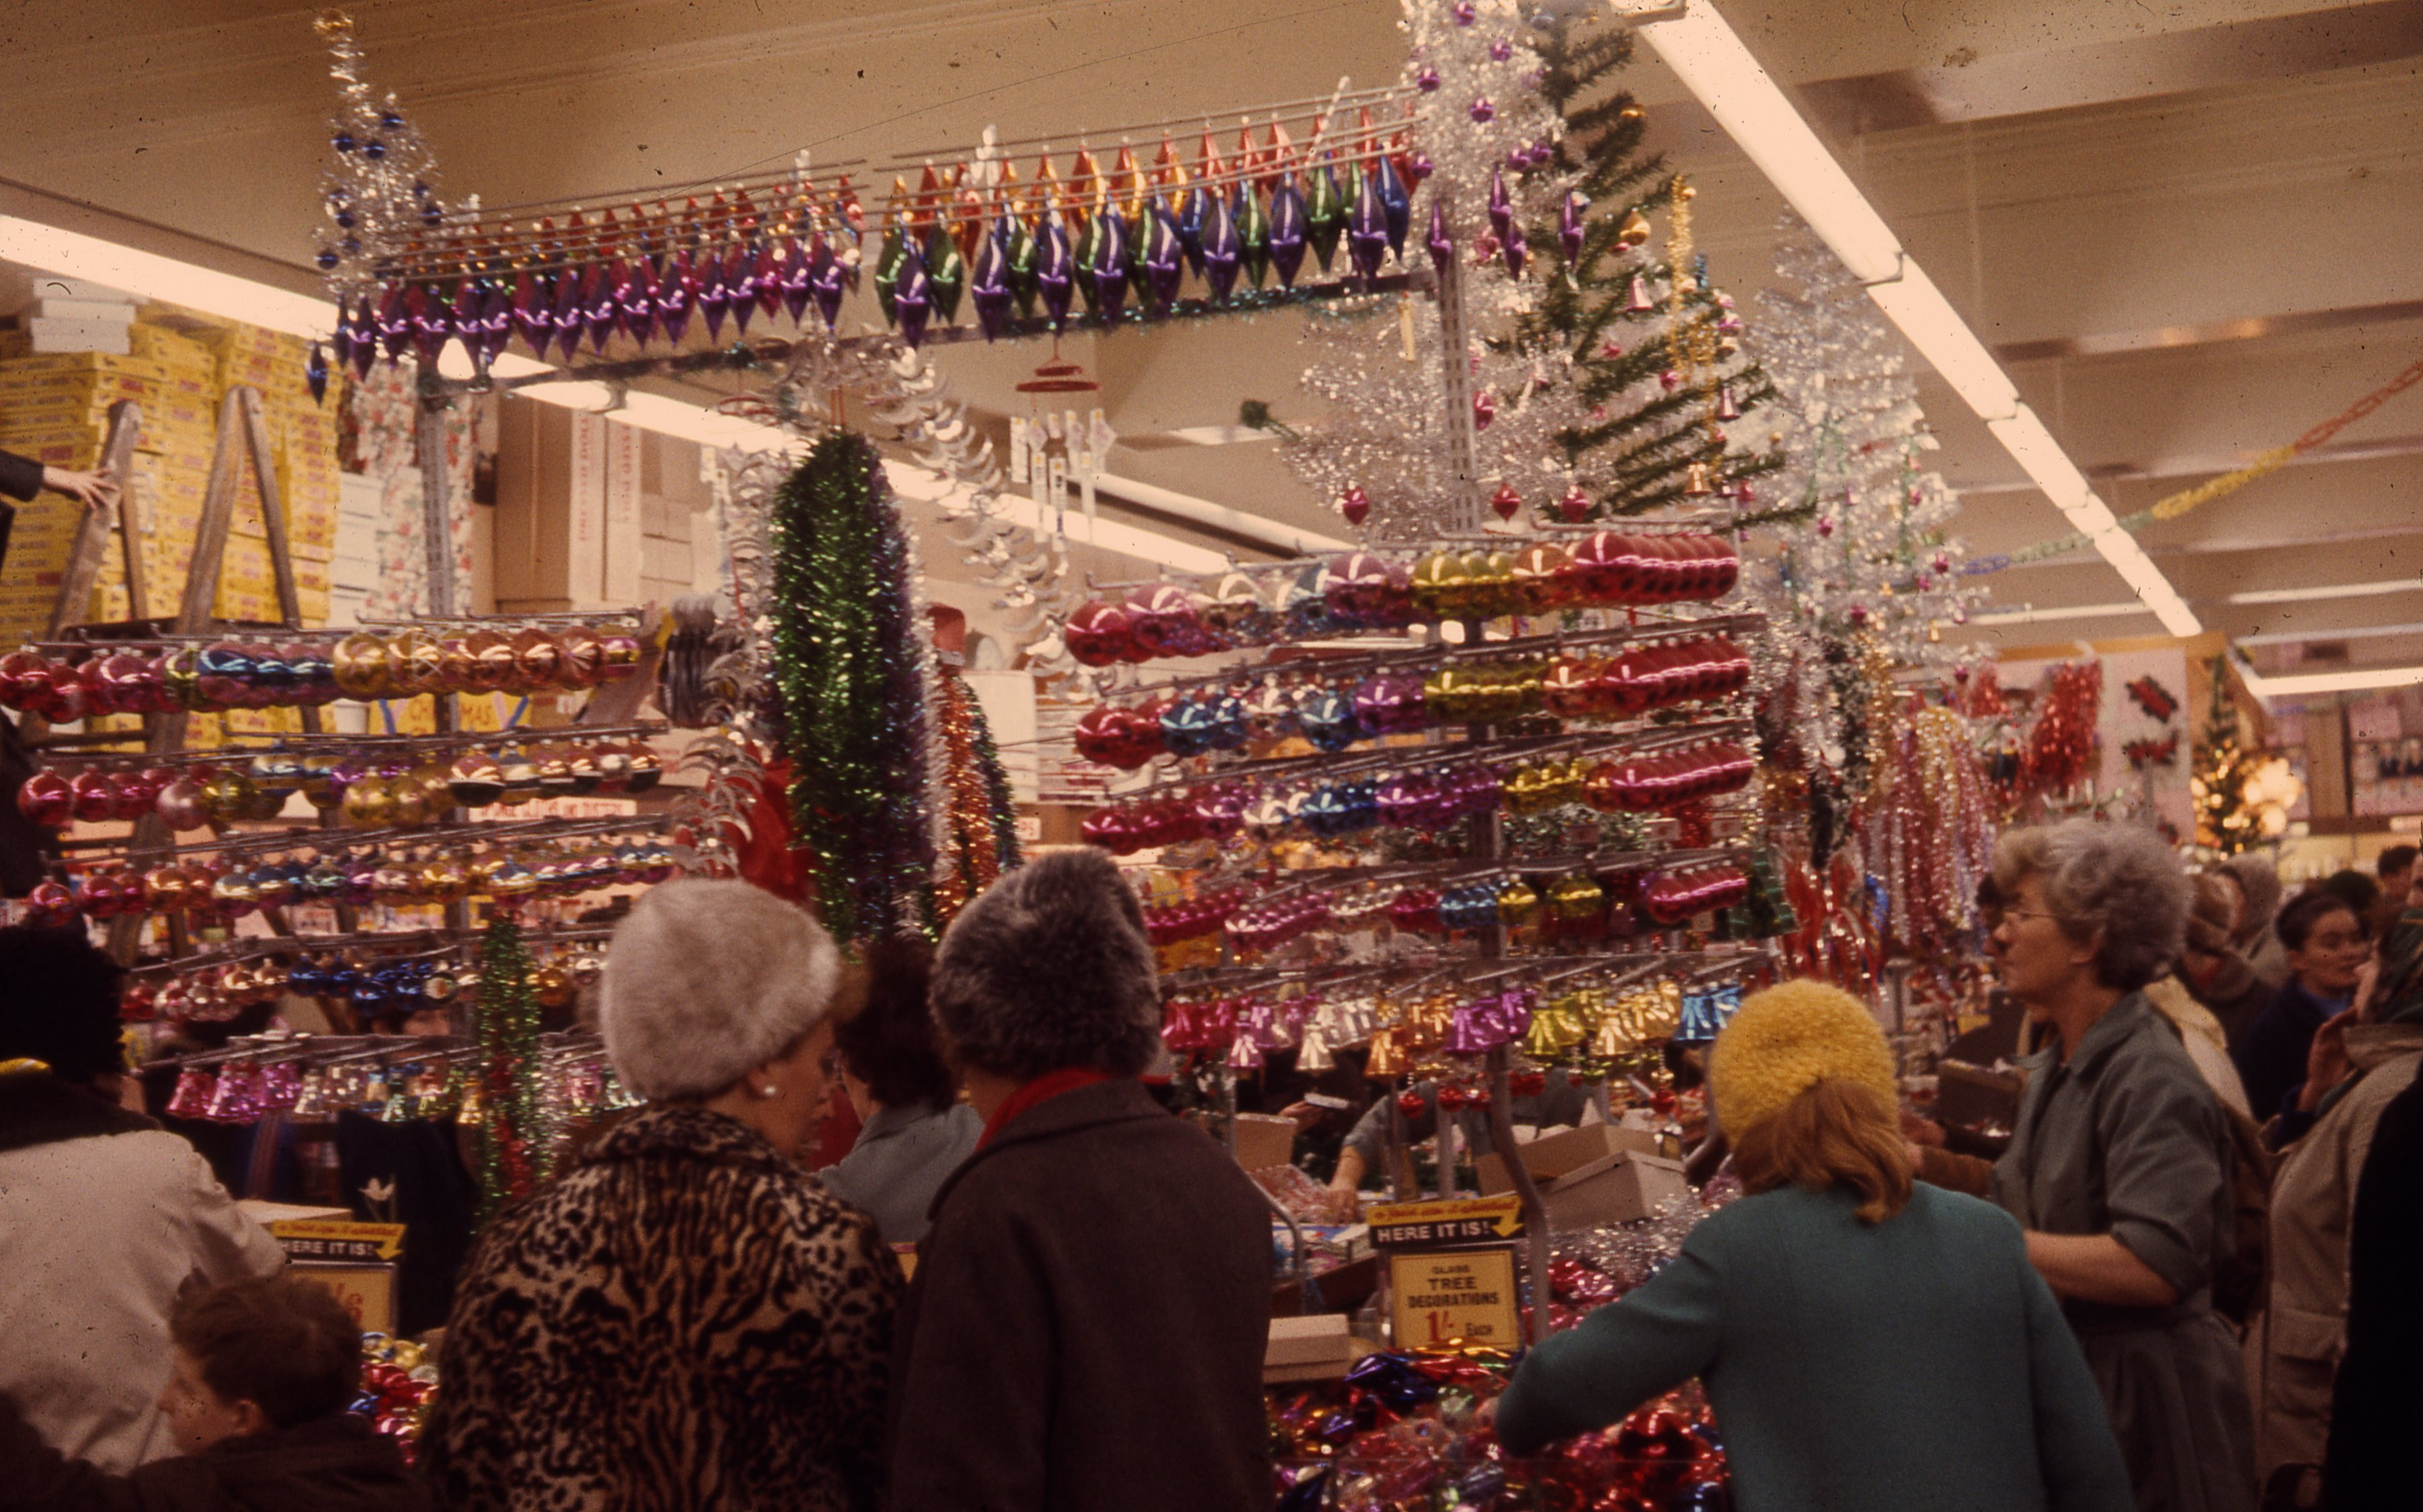 . It shows shoppers in the decoration department of Woolworths in Newcastle upon Tyne. This is a 35mm slide. it was taken in 1966.